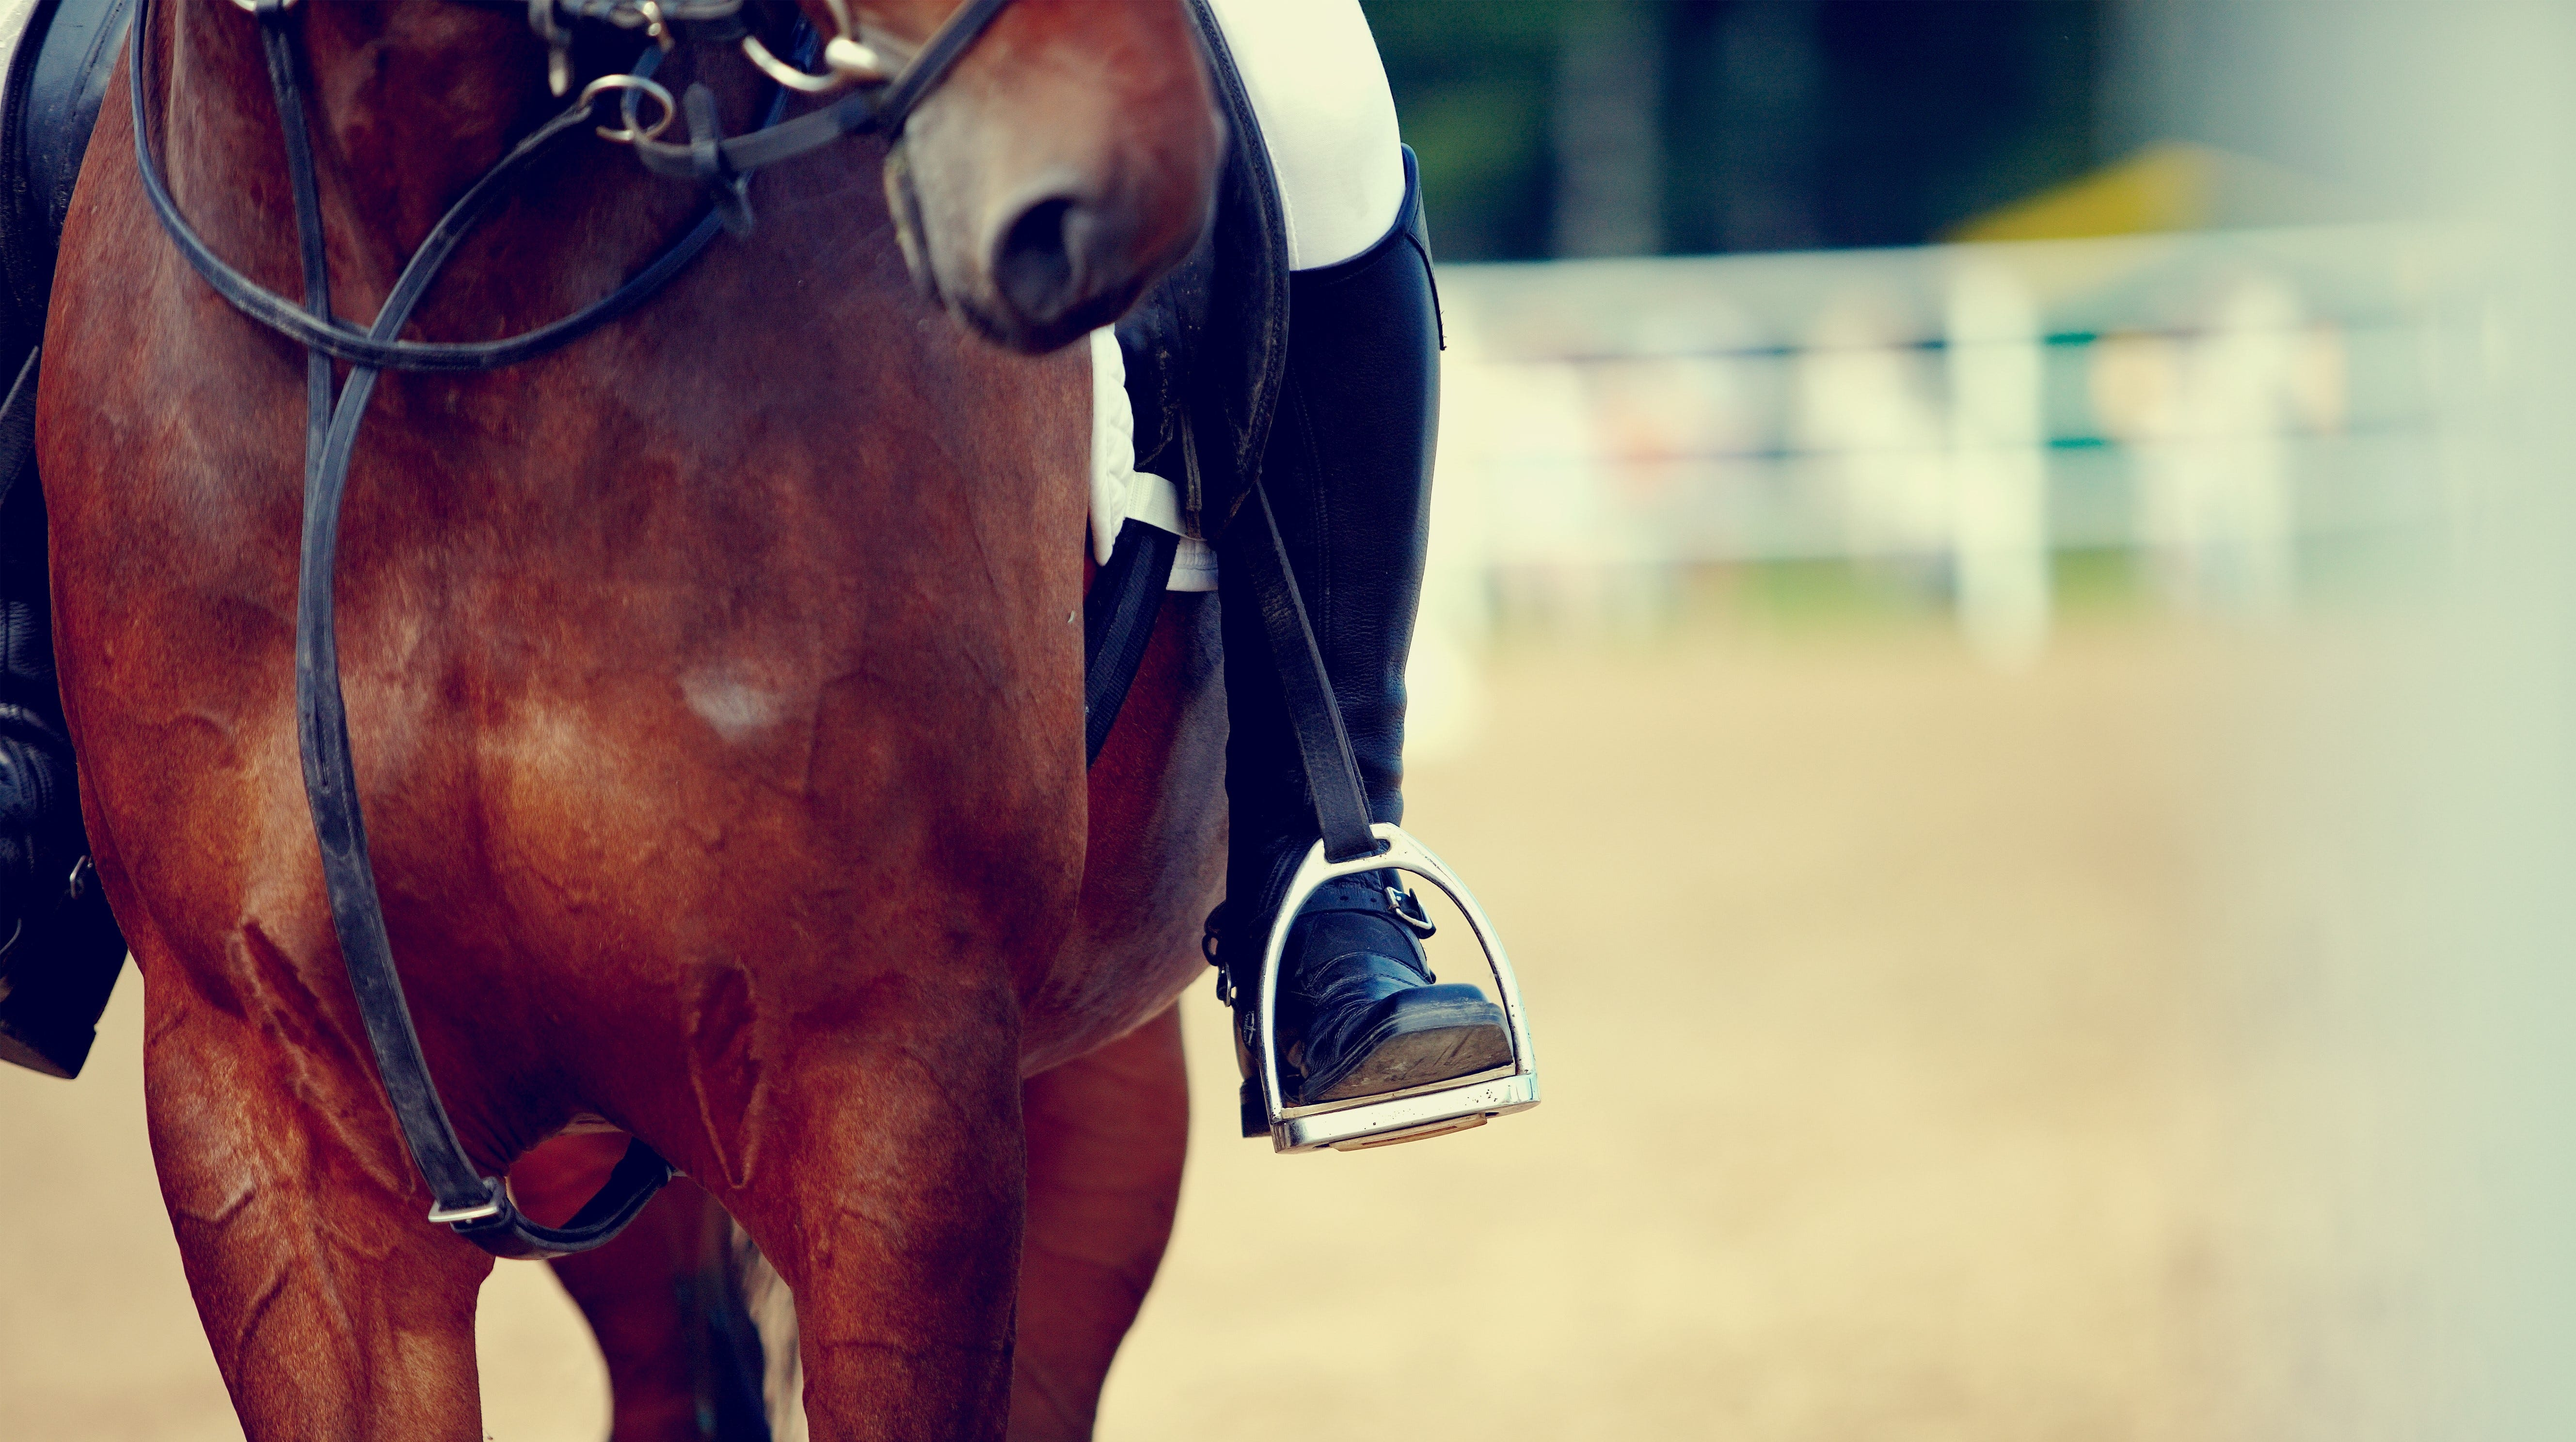 Twenty 4-H horse club members will represent Cumberland County at the state 4-H horse show.